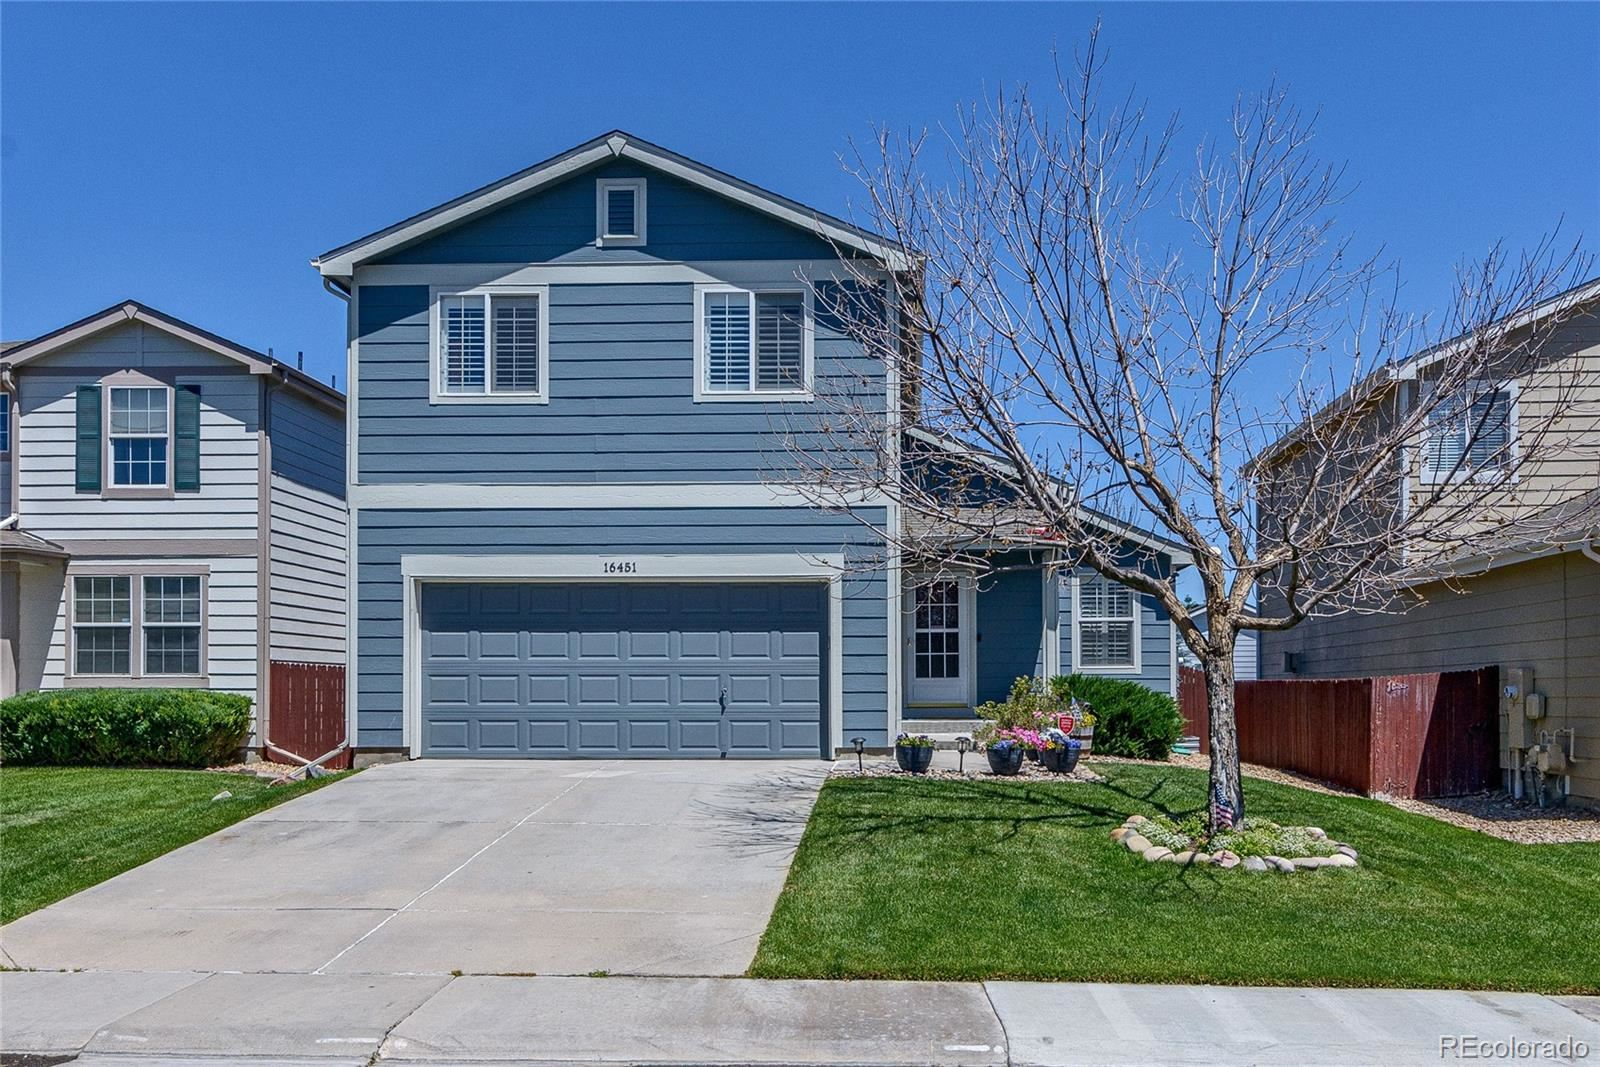 16451 E Phillips Drive, Englewood, CO 80112 - #: 9015580